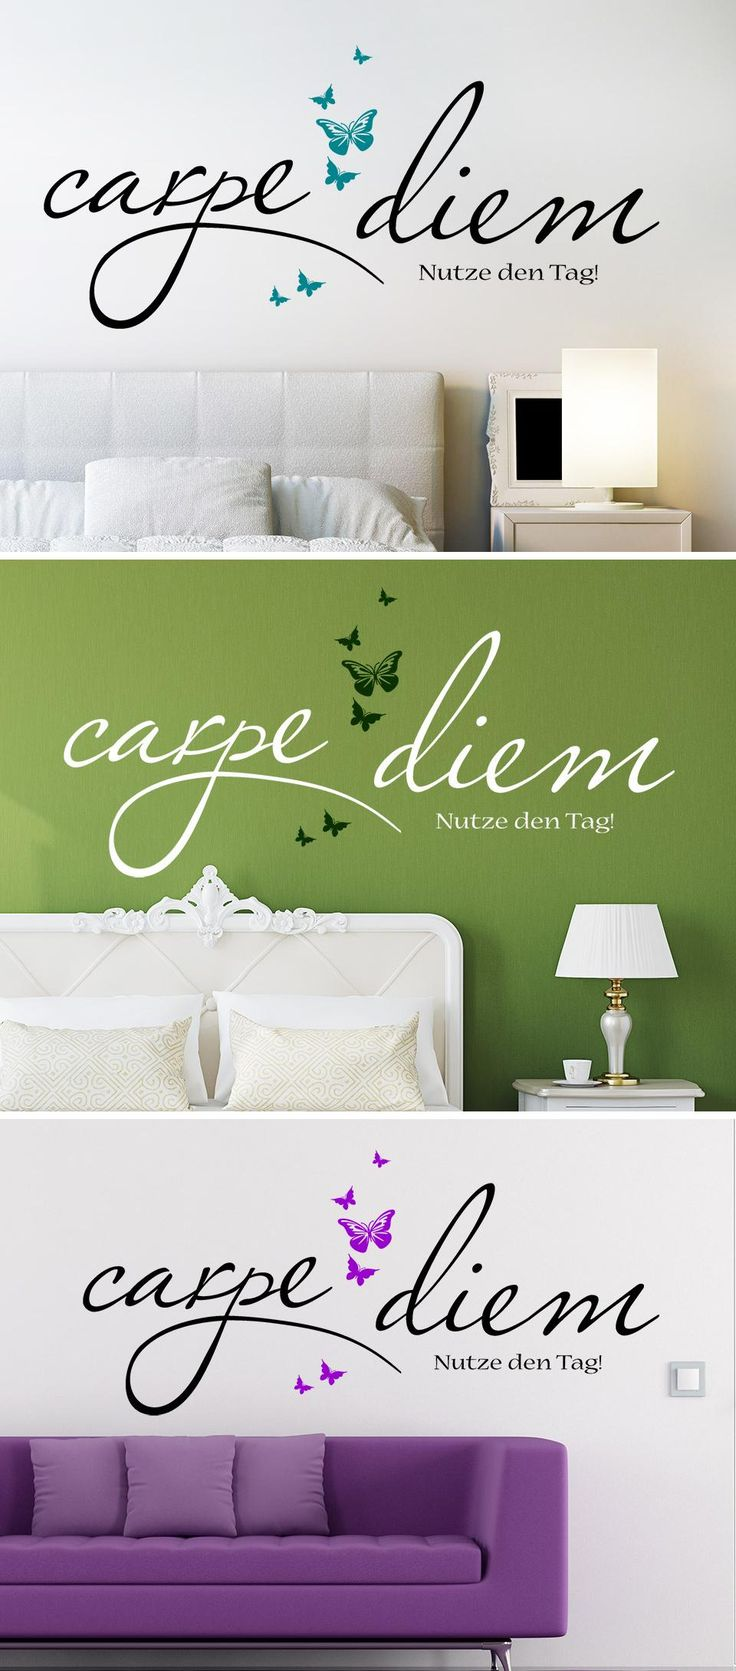 17 best ideas about carpe diem on pinterest living quotes carpe diem quotes and life motto. Black Bedroom Furniture Sets. Home Design Ideas